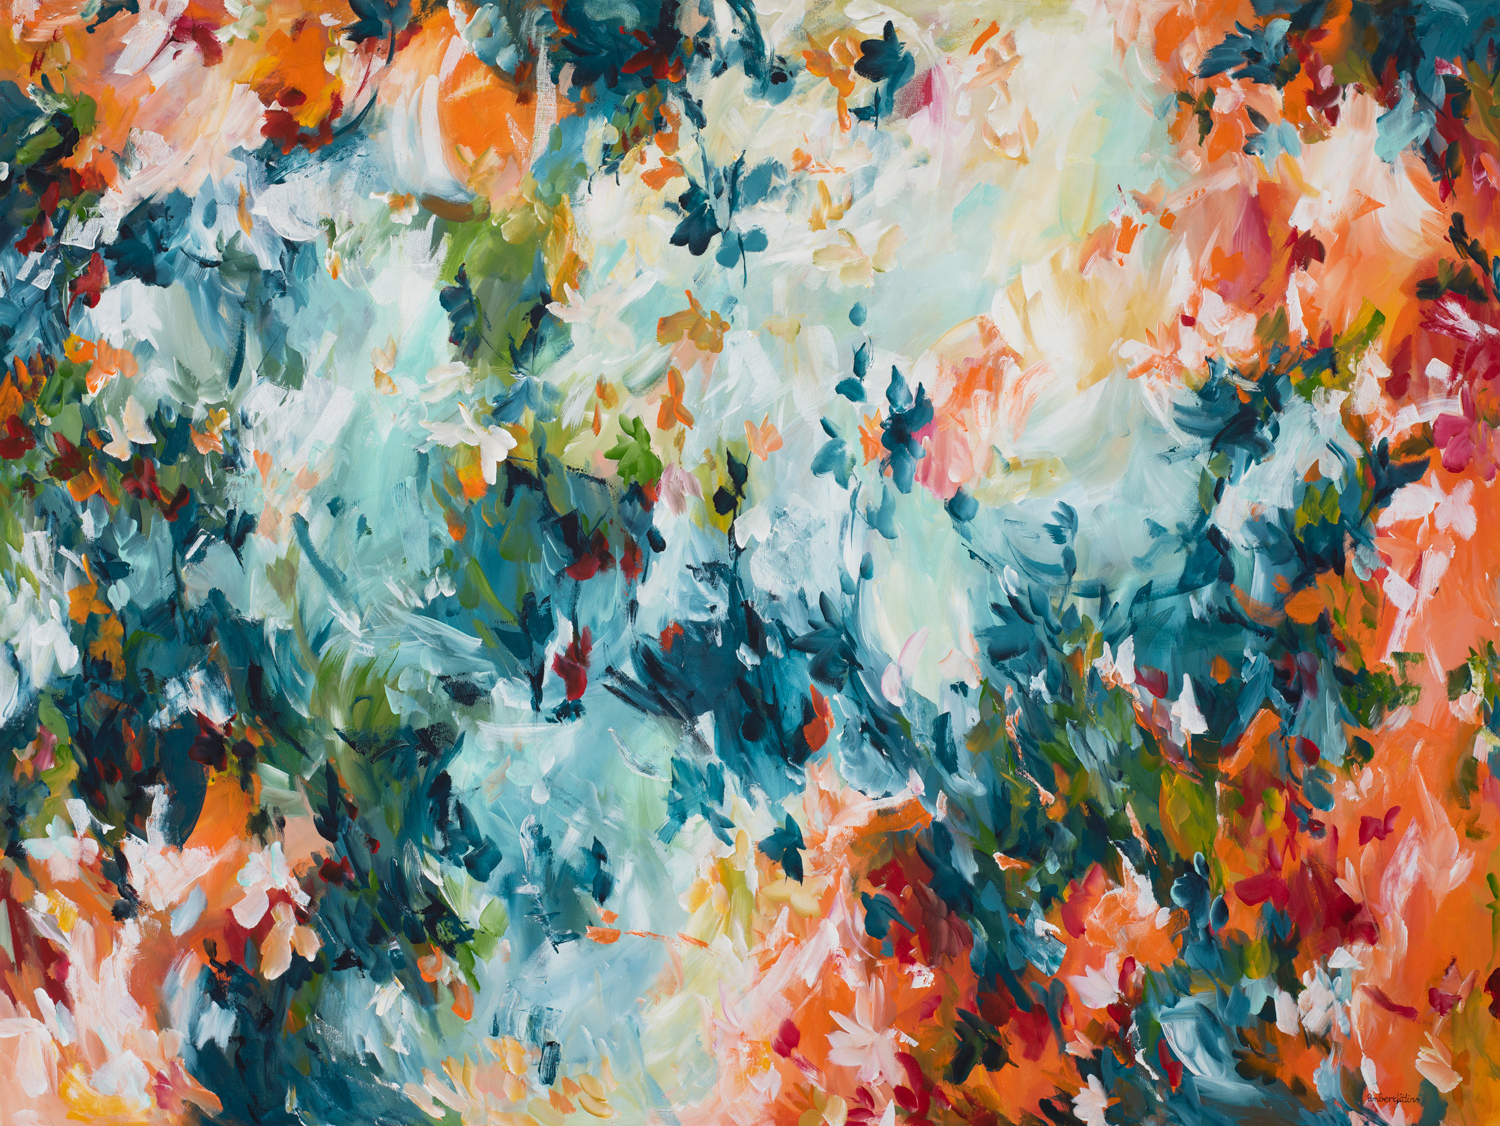 Wild Fire Large Abstract Painting By Amber Gittins